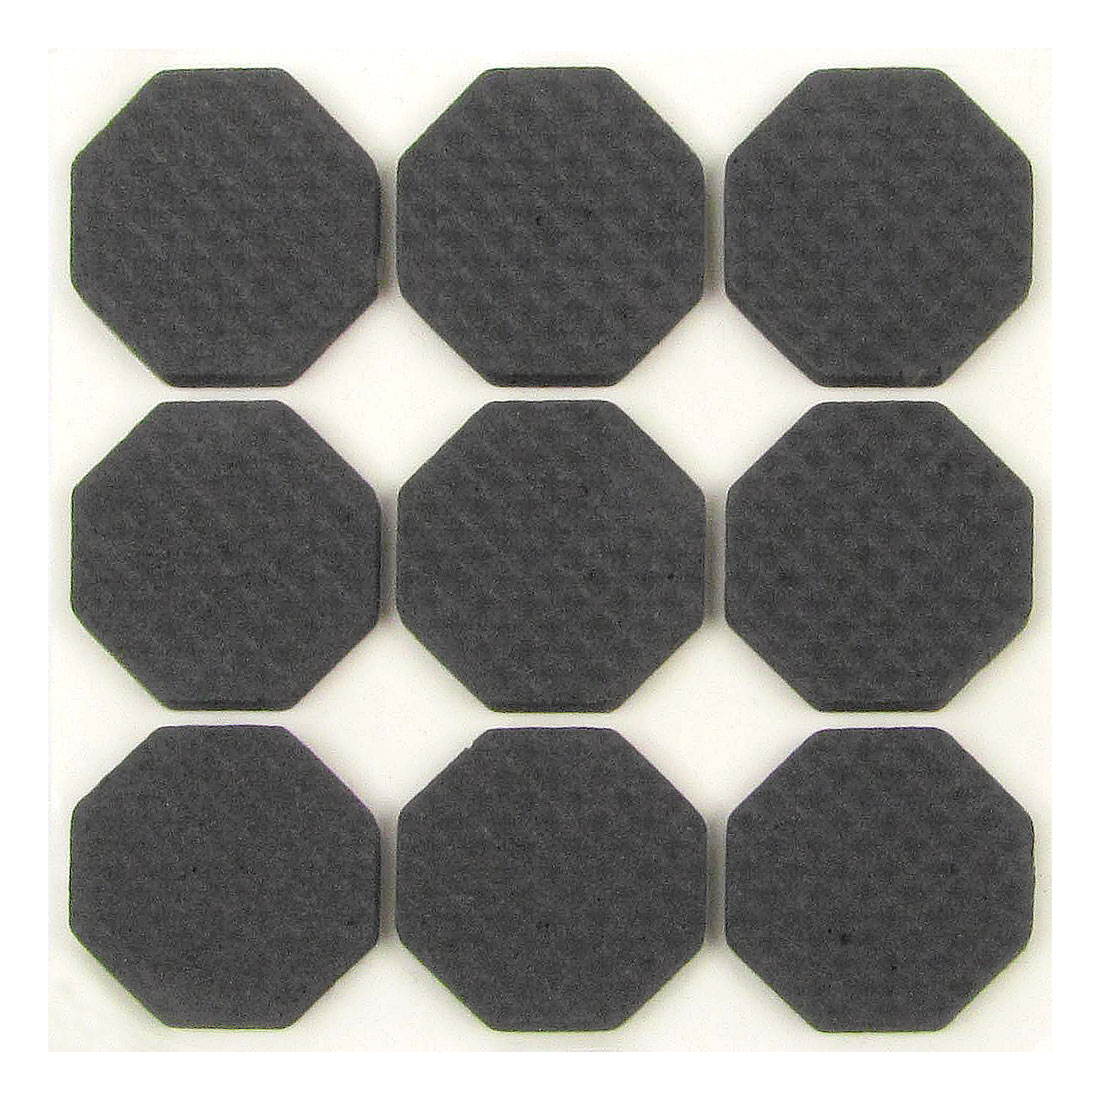 9 Pcs Home Office Black Hexagon 25mm x 25mm Desk Table Chair Leg Foot Guard